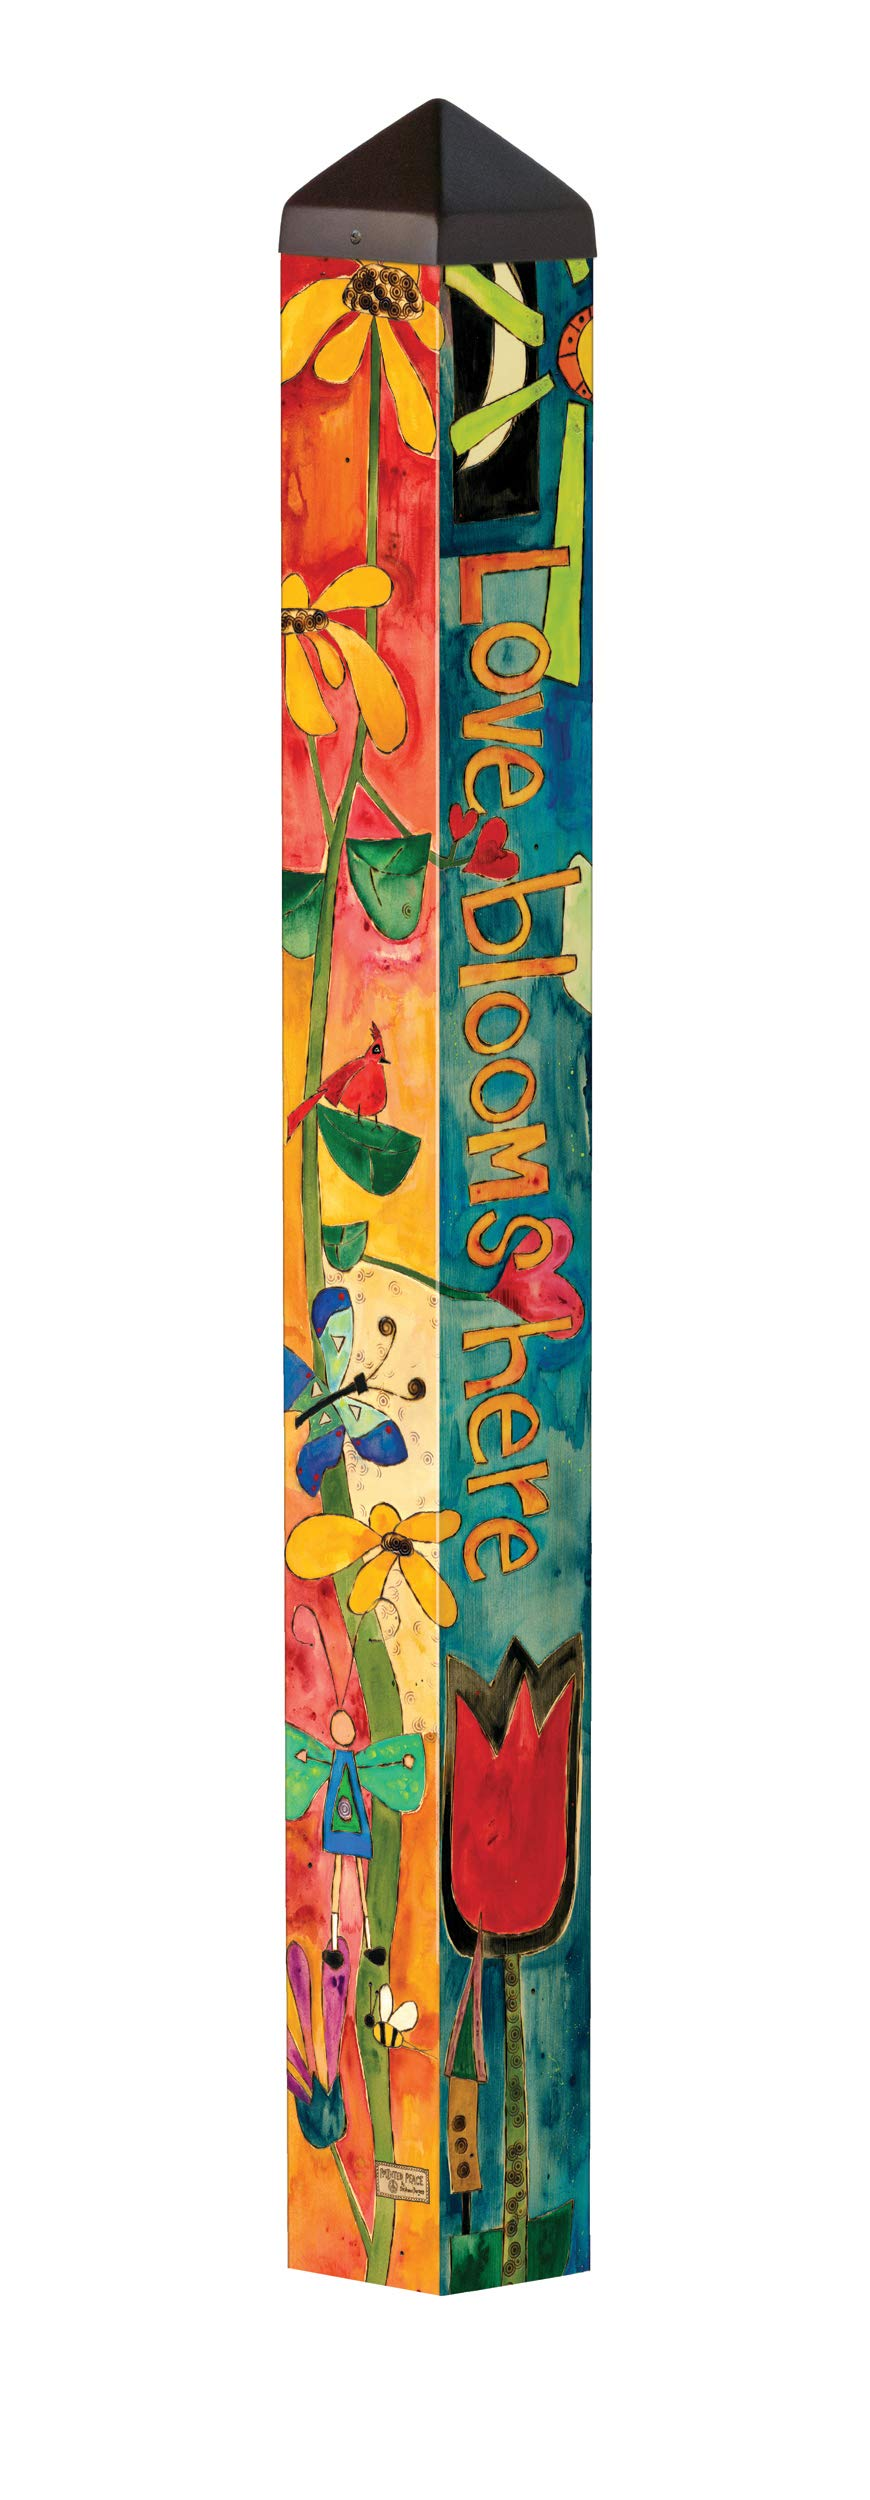 Studio M Love Garden Art Pole Bold Floral Outdoor Decorative Garden Post, Made in USA, 40 Inches Tall by Studio M (Image #1)